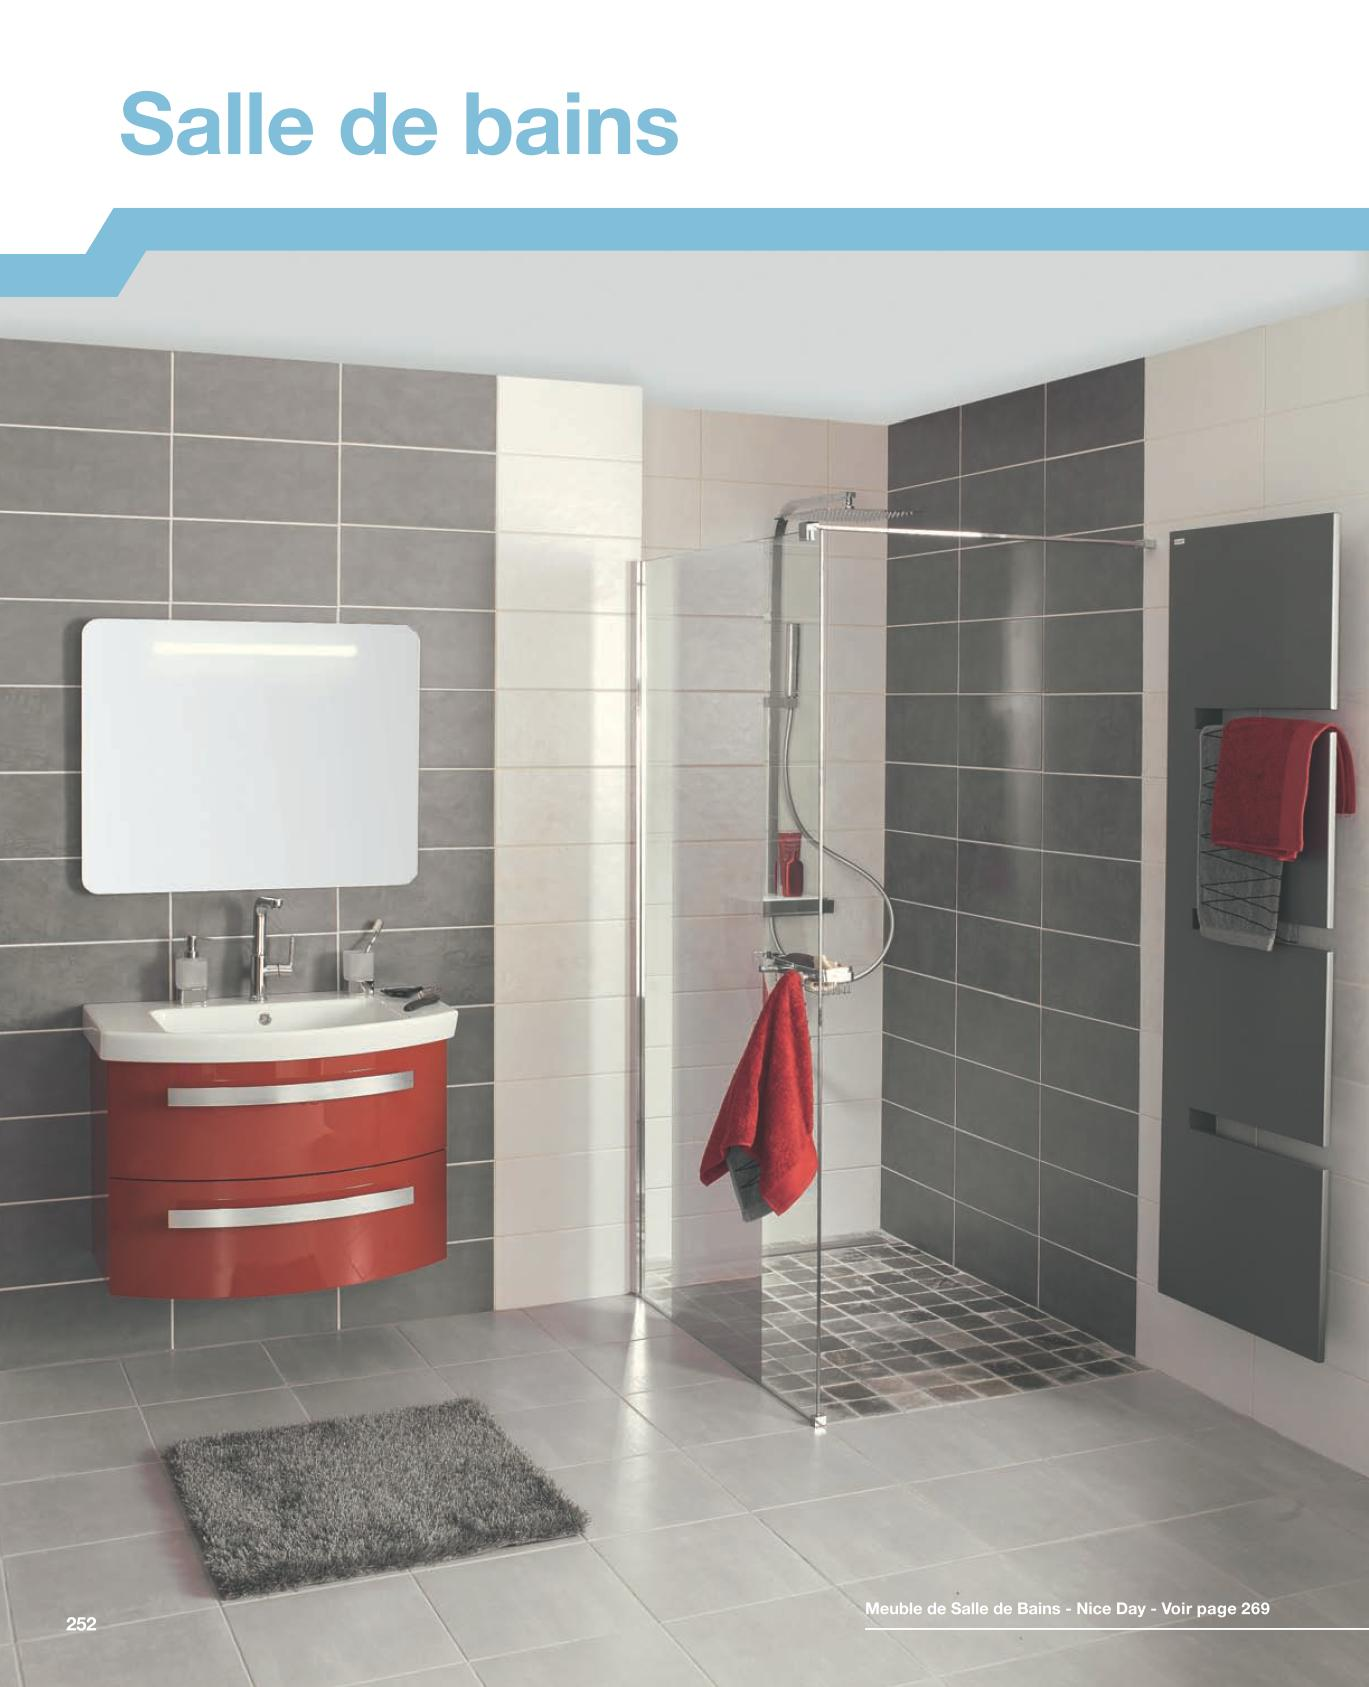 Carrelage point p salle de bain